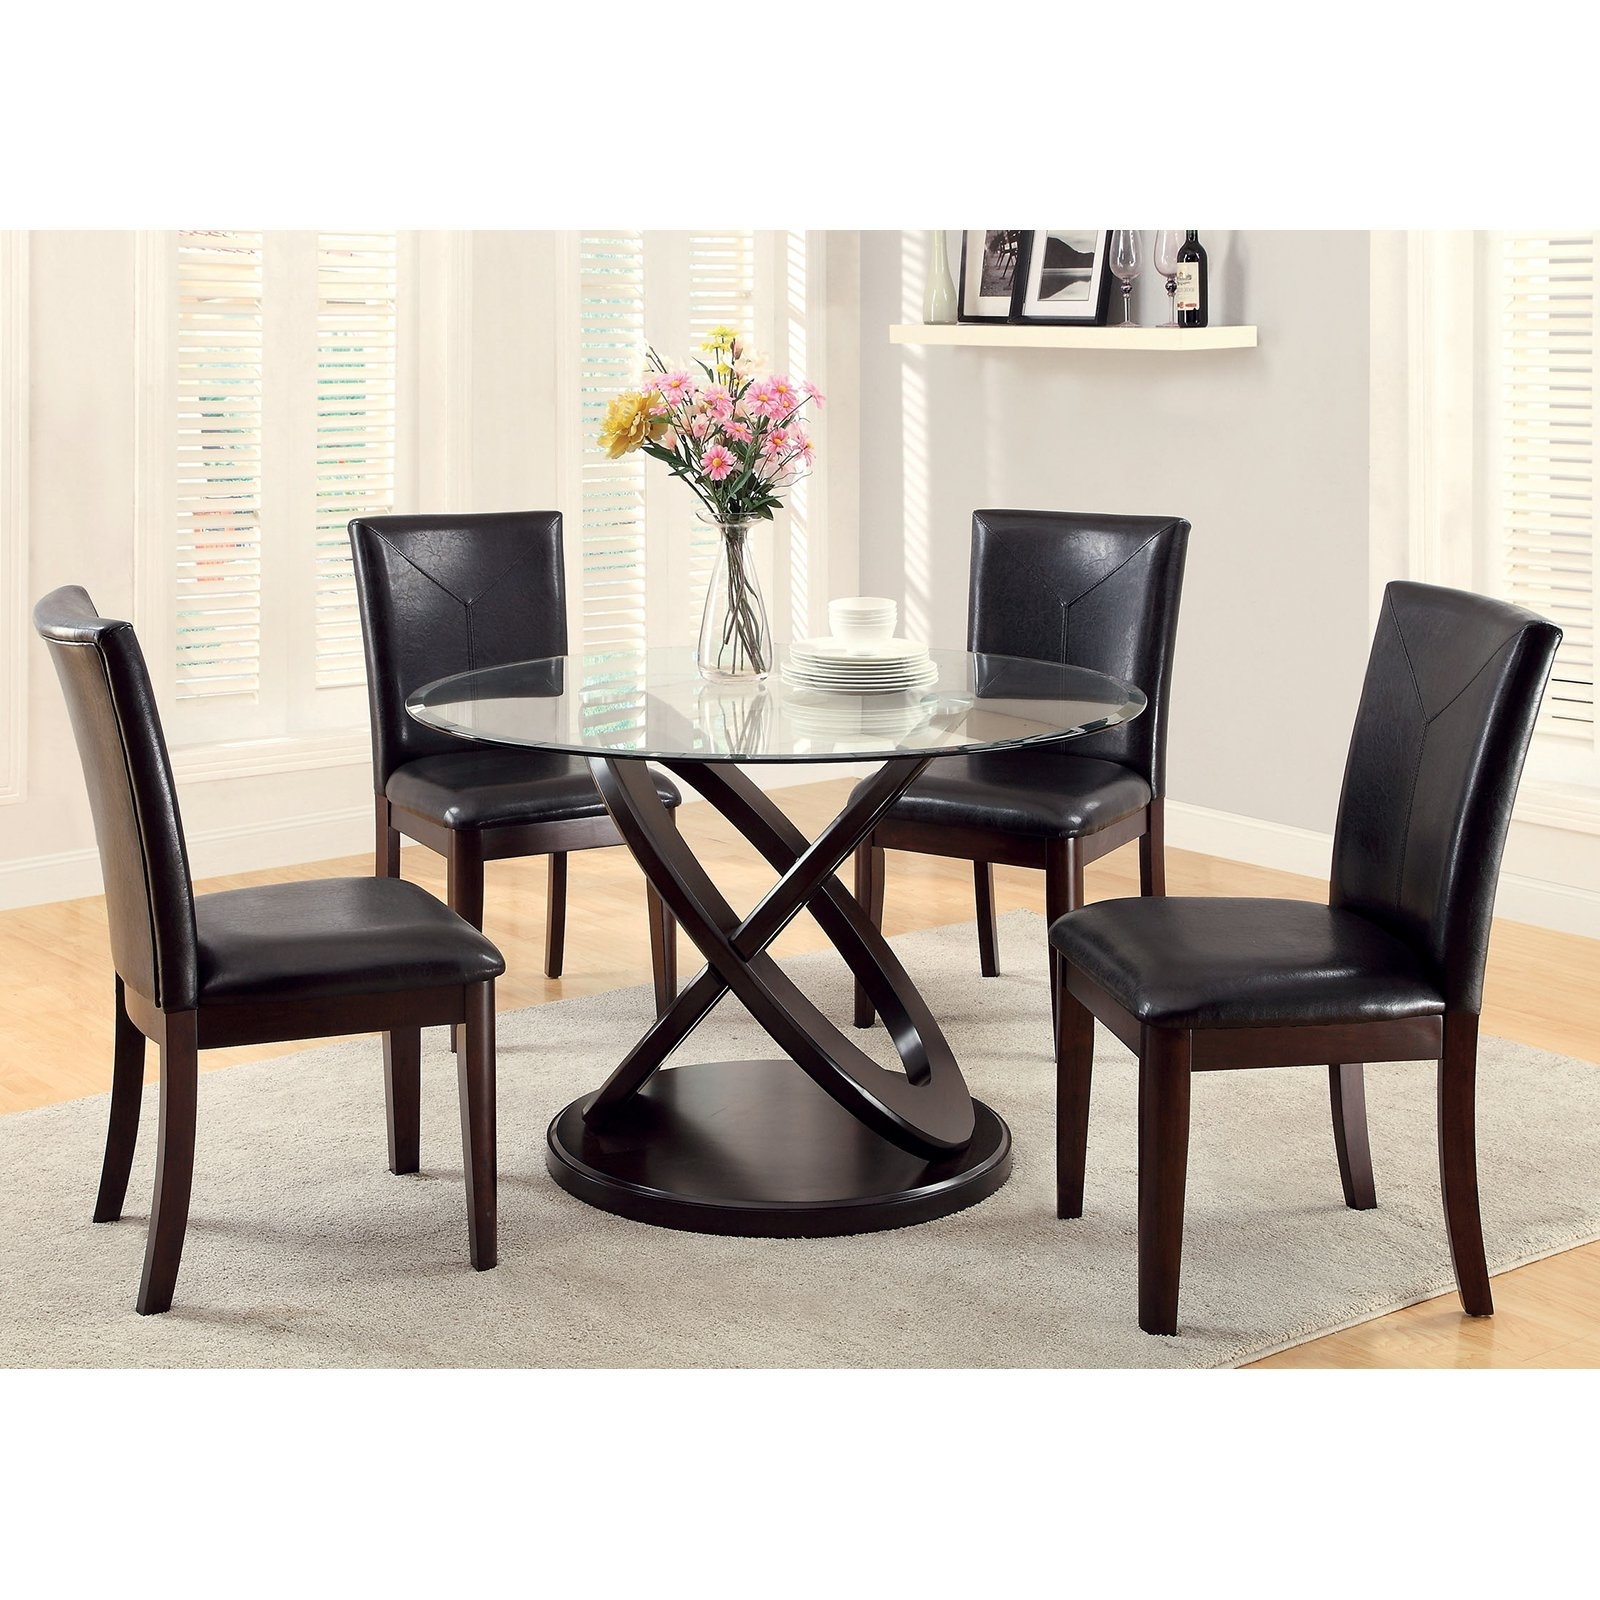 Well Liked Furniture Of America Ollivander 5 Piece Glass Top Dining Table Set Throughout Glass Dining Tables Sets (View 3 of 25)